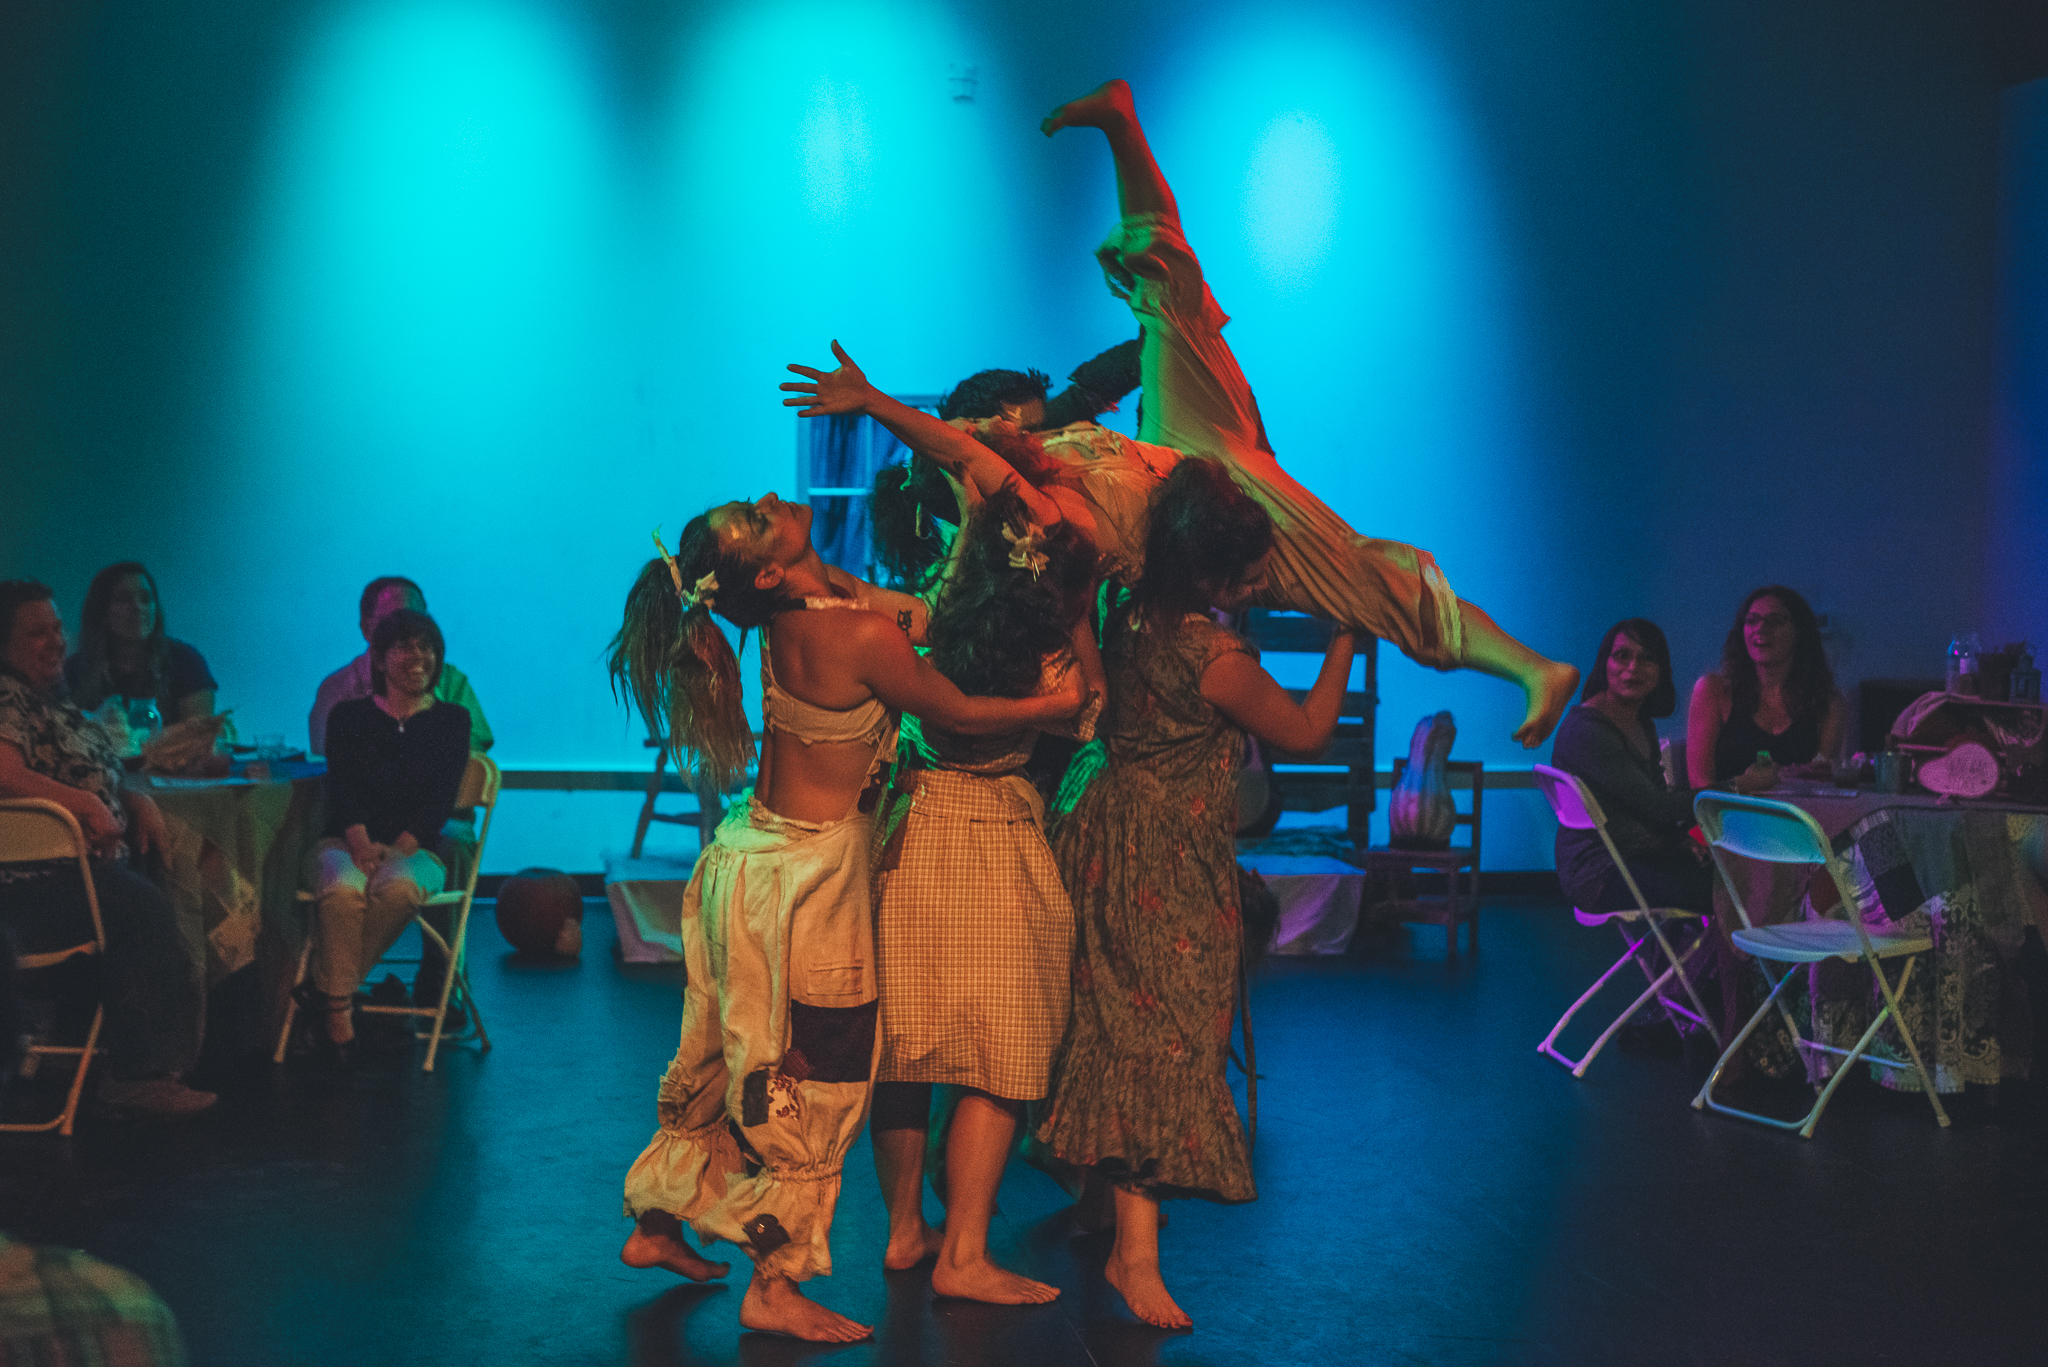 Dancers performing at Wild West theater show in Austin